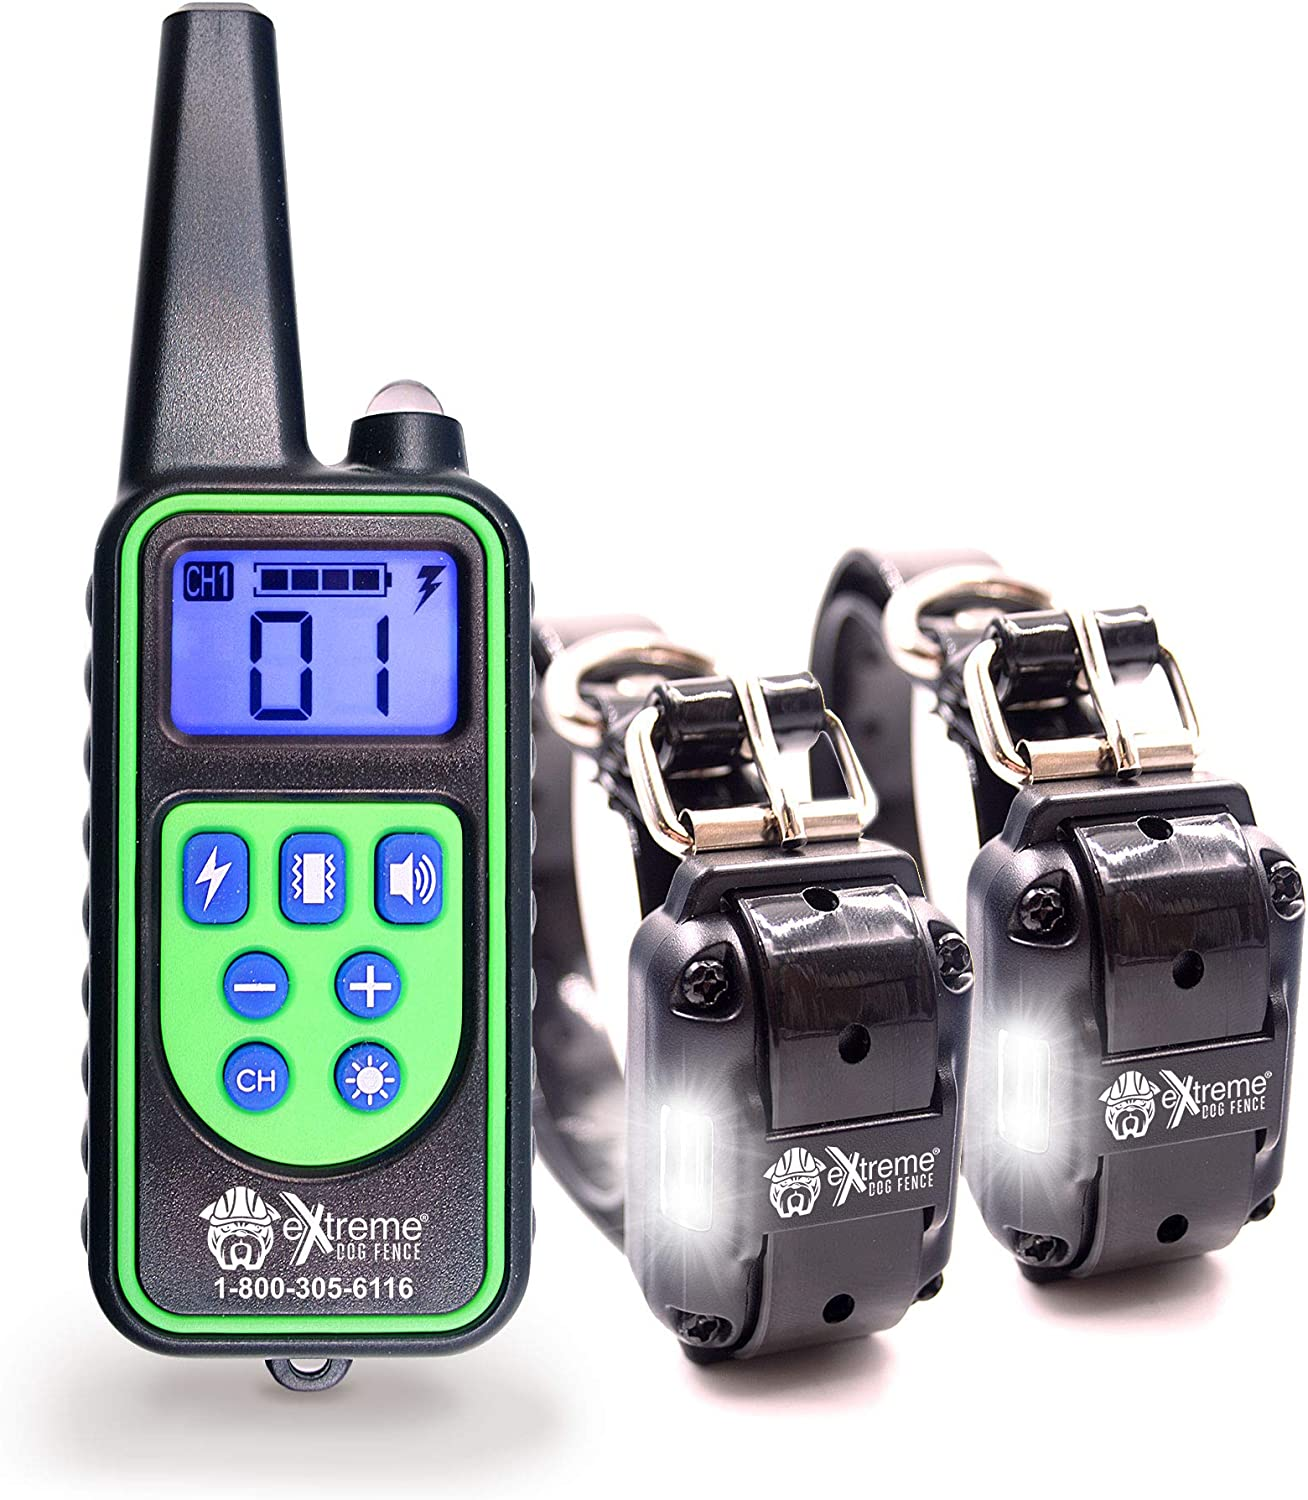 Remote Control Dog Shock Collar for Small Dogs or Big Dogs 99 Level Correcting, Vibration, o Tone Only Recharable Remote and Waterprova Collar Kit for 2 Dogs